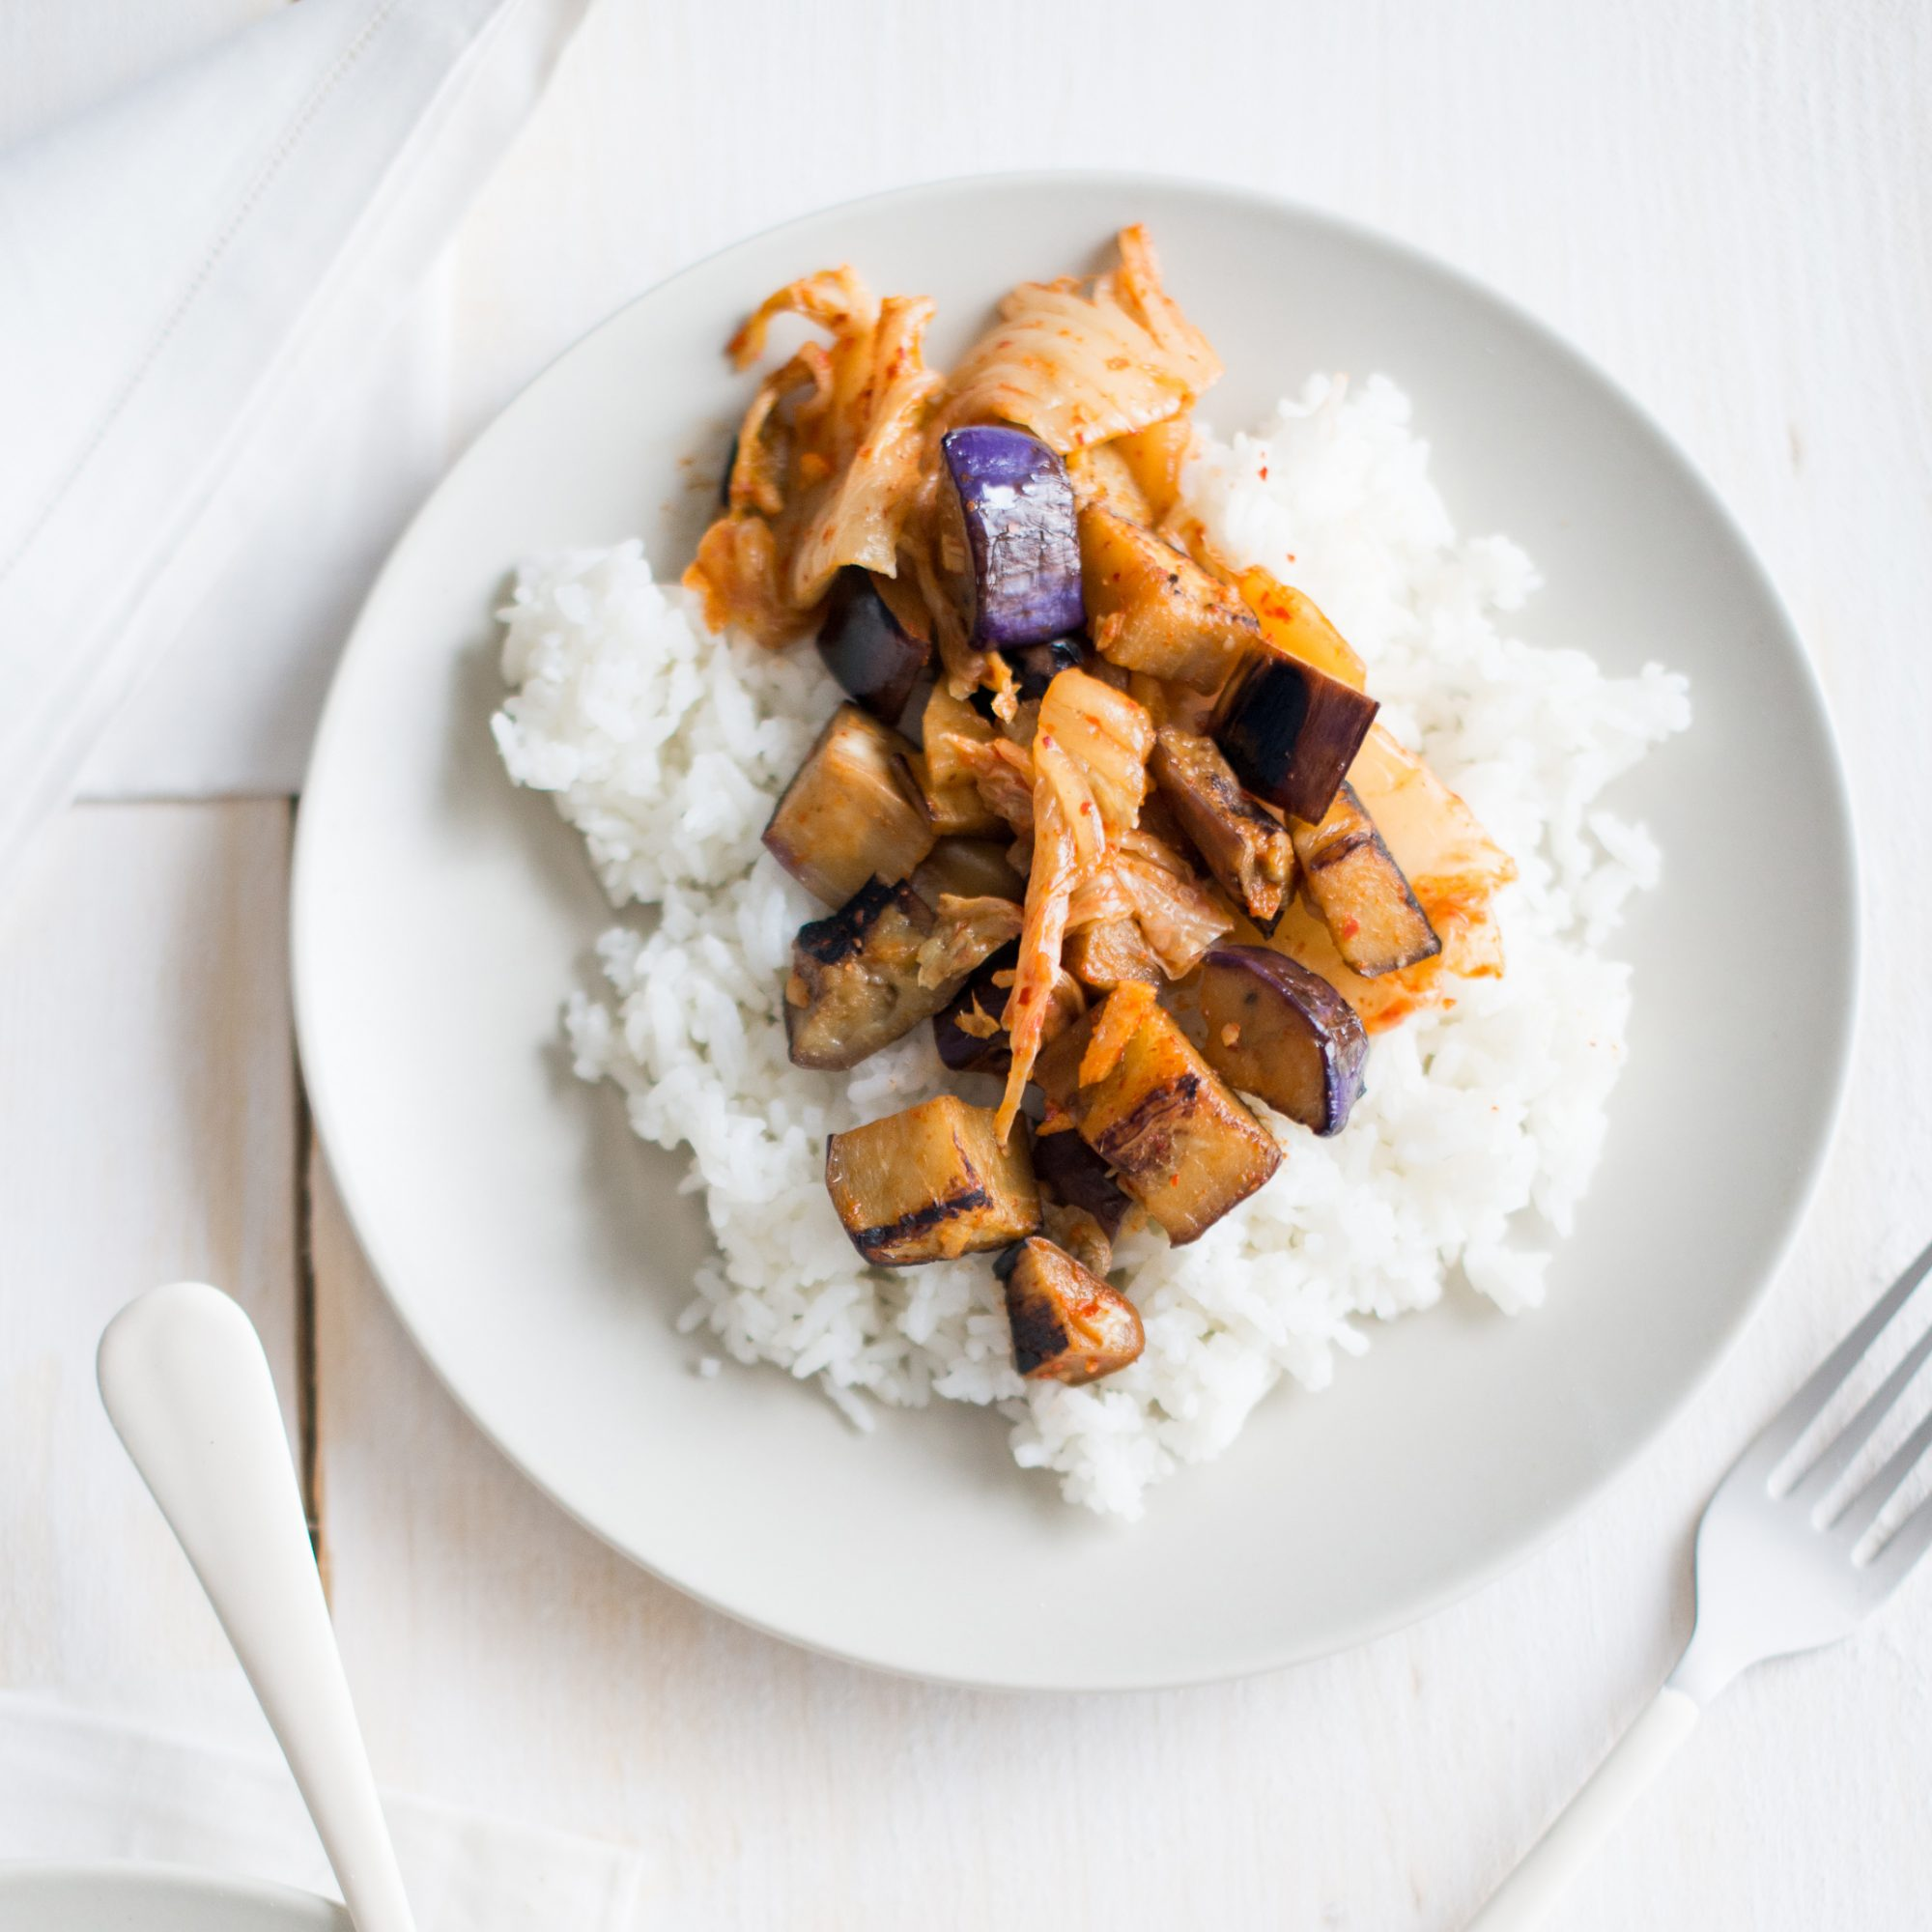 Seared Eggplant and Kimchi Stir-Fry